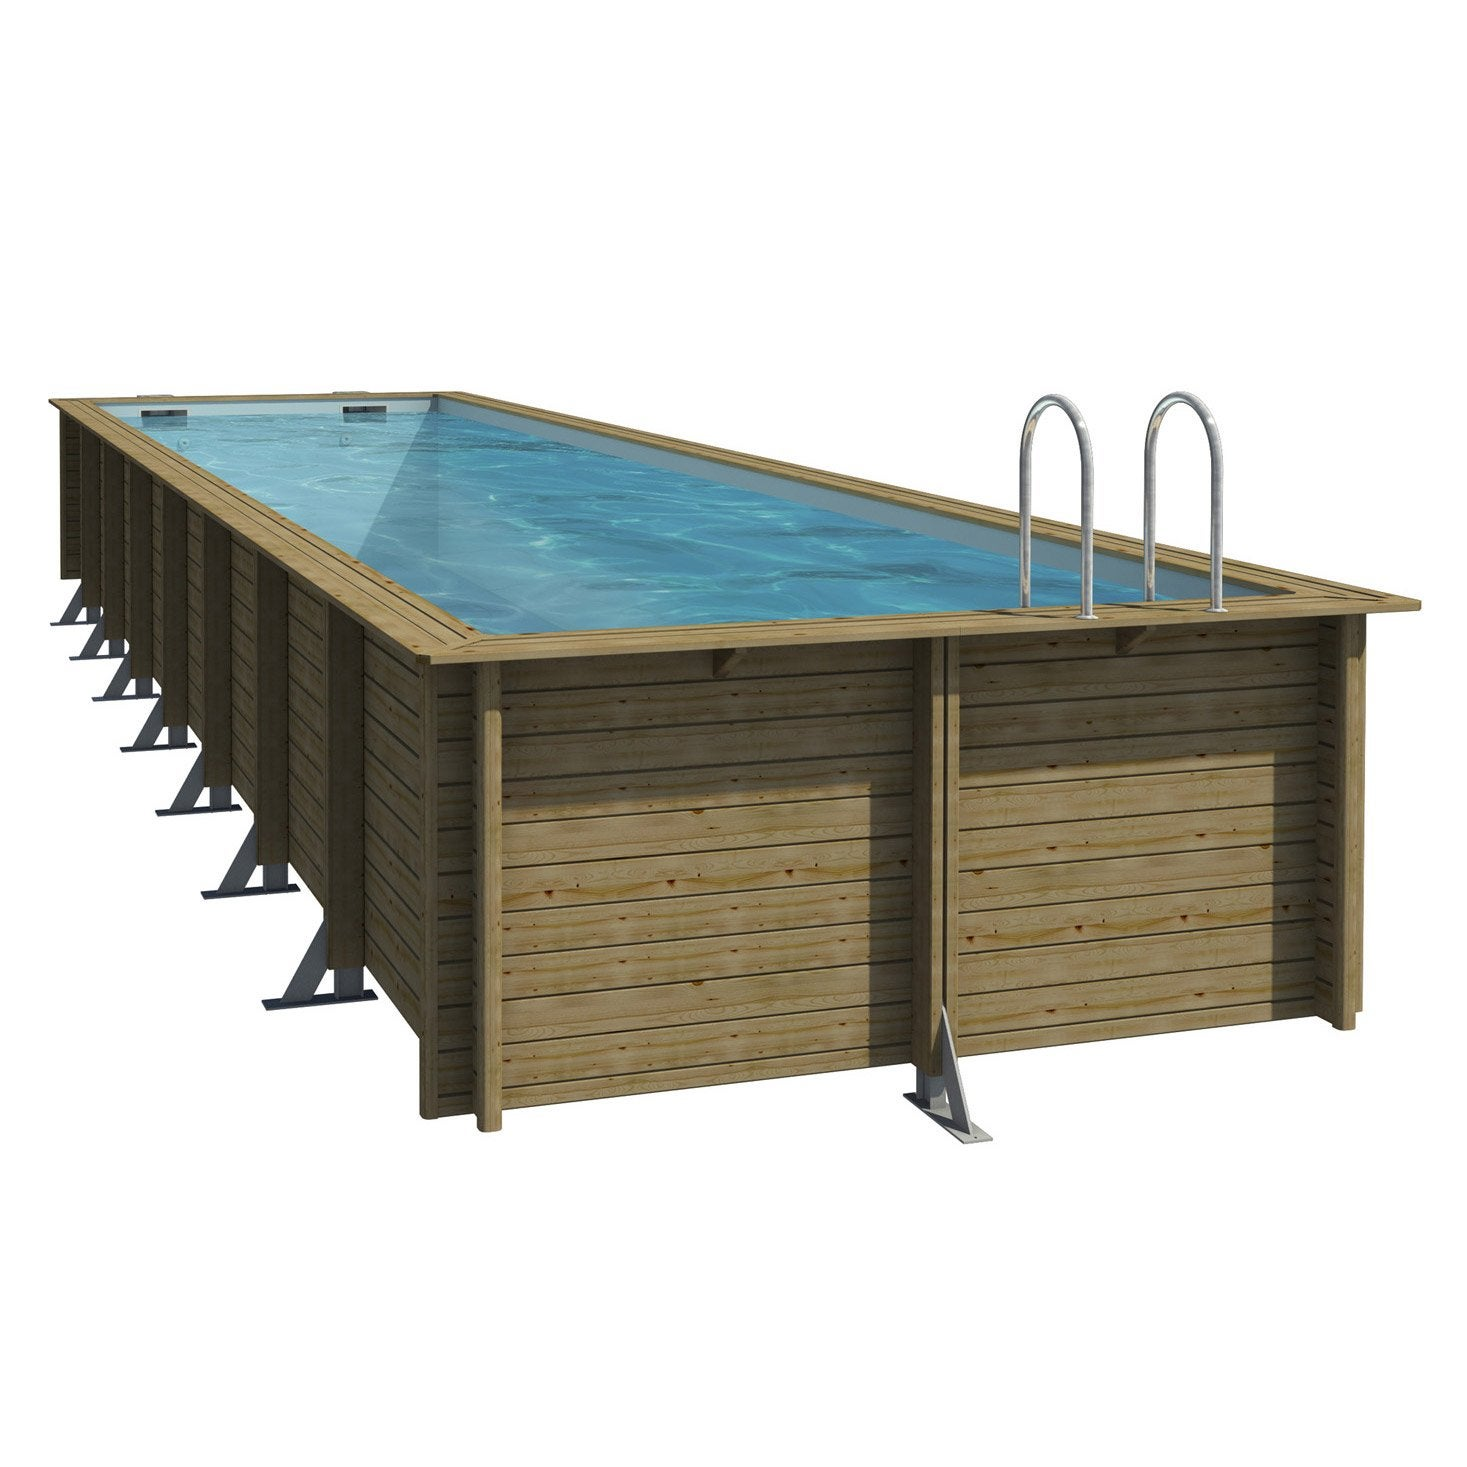 Piscine hors sol bois weva l 9 5 x l 3 5 x h m for Piscine hors sol legislation